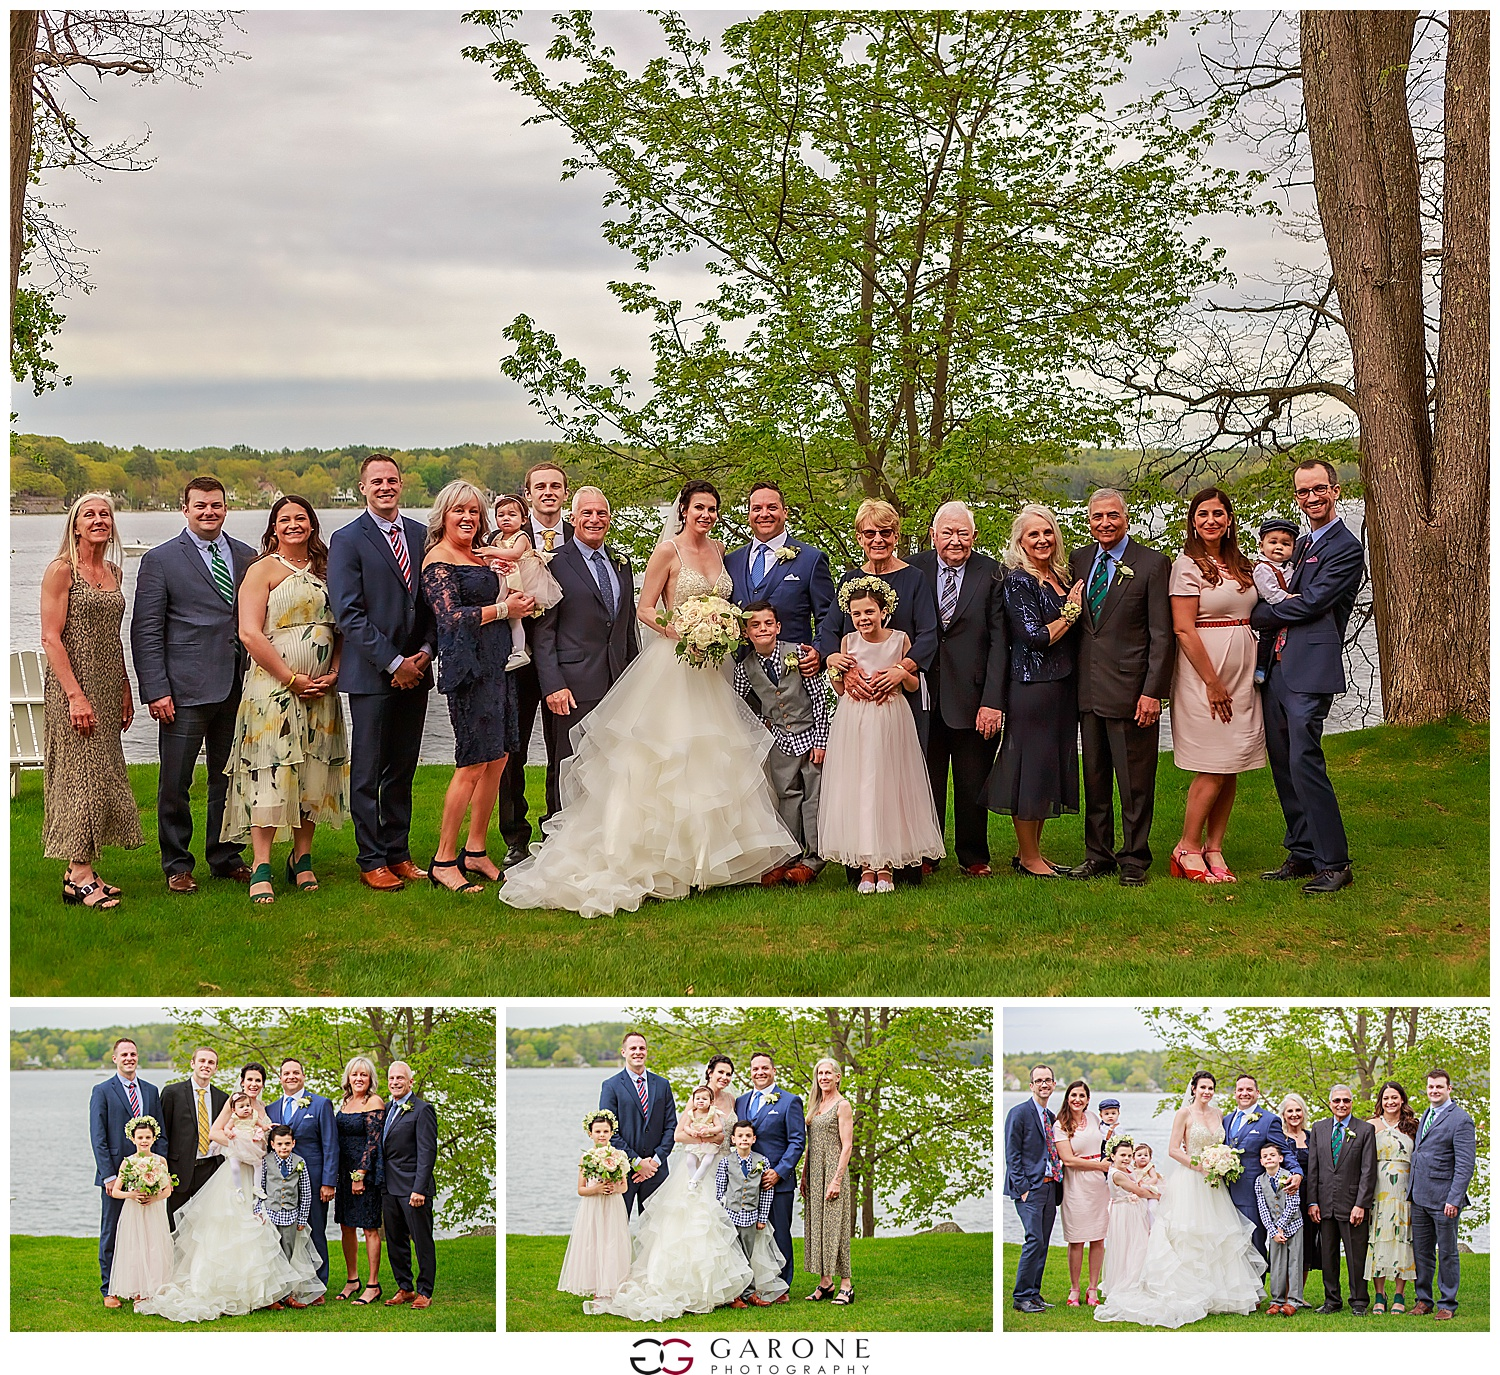 Shauna_Nathan_Carriage_House_Chuch_Landing_Lake_Winnapausakee_Wedding_0021.jpg